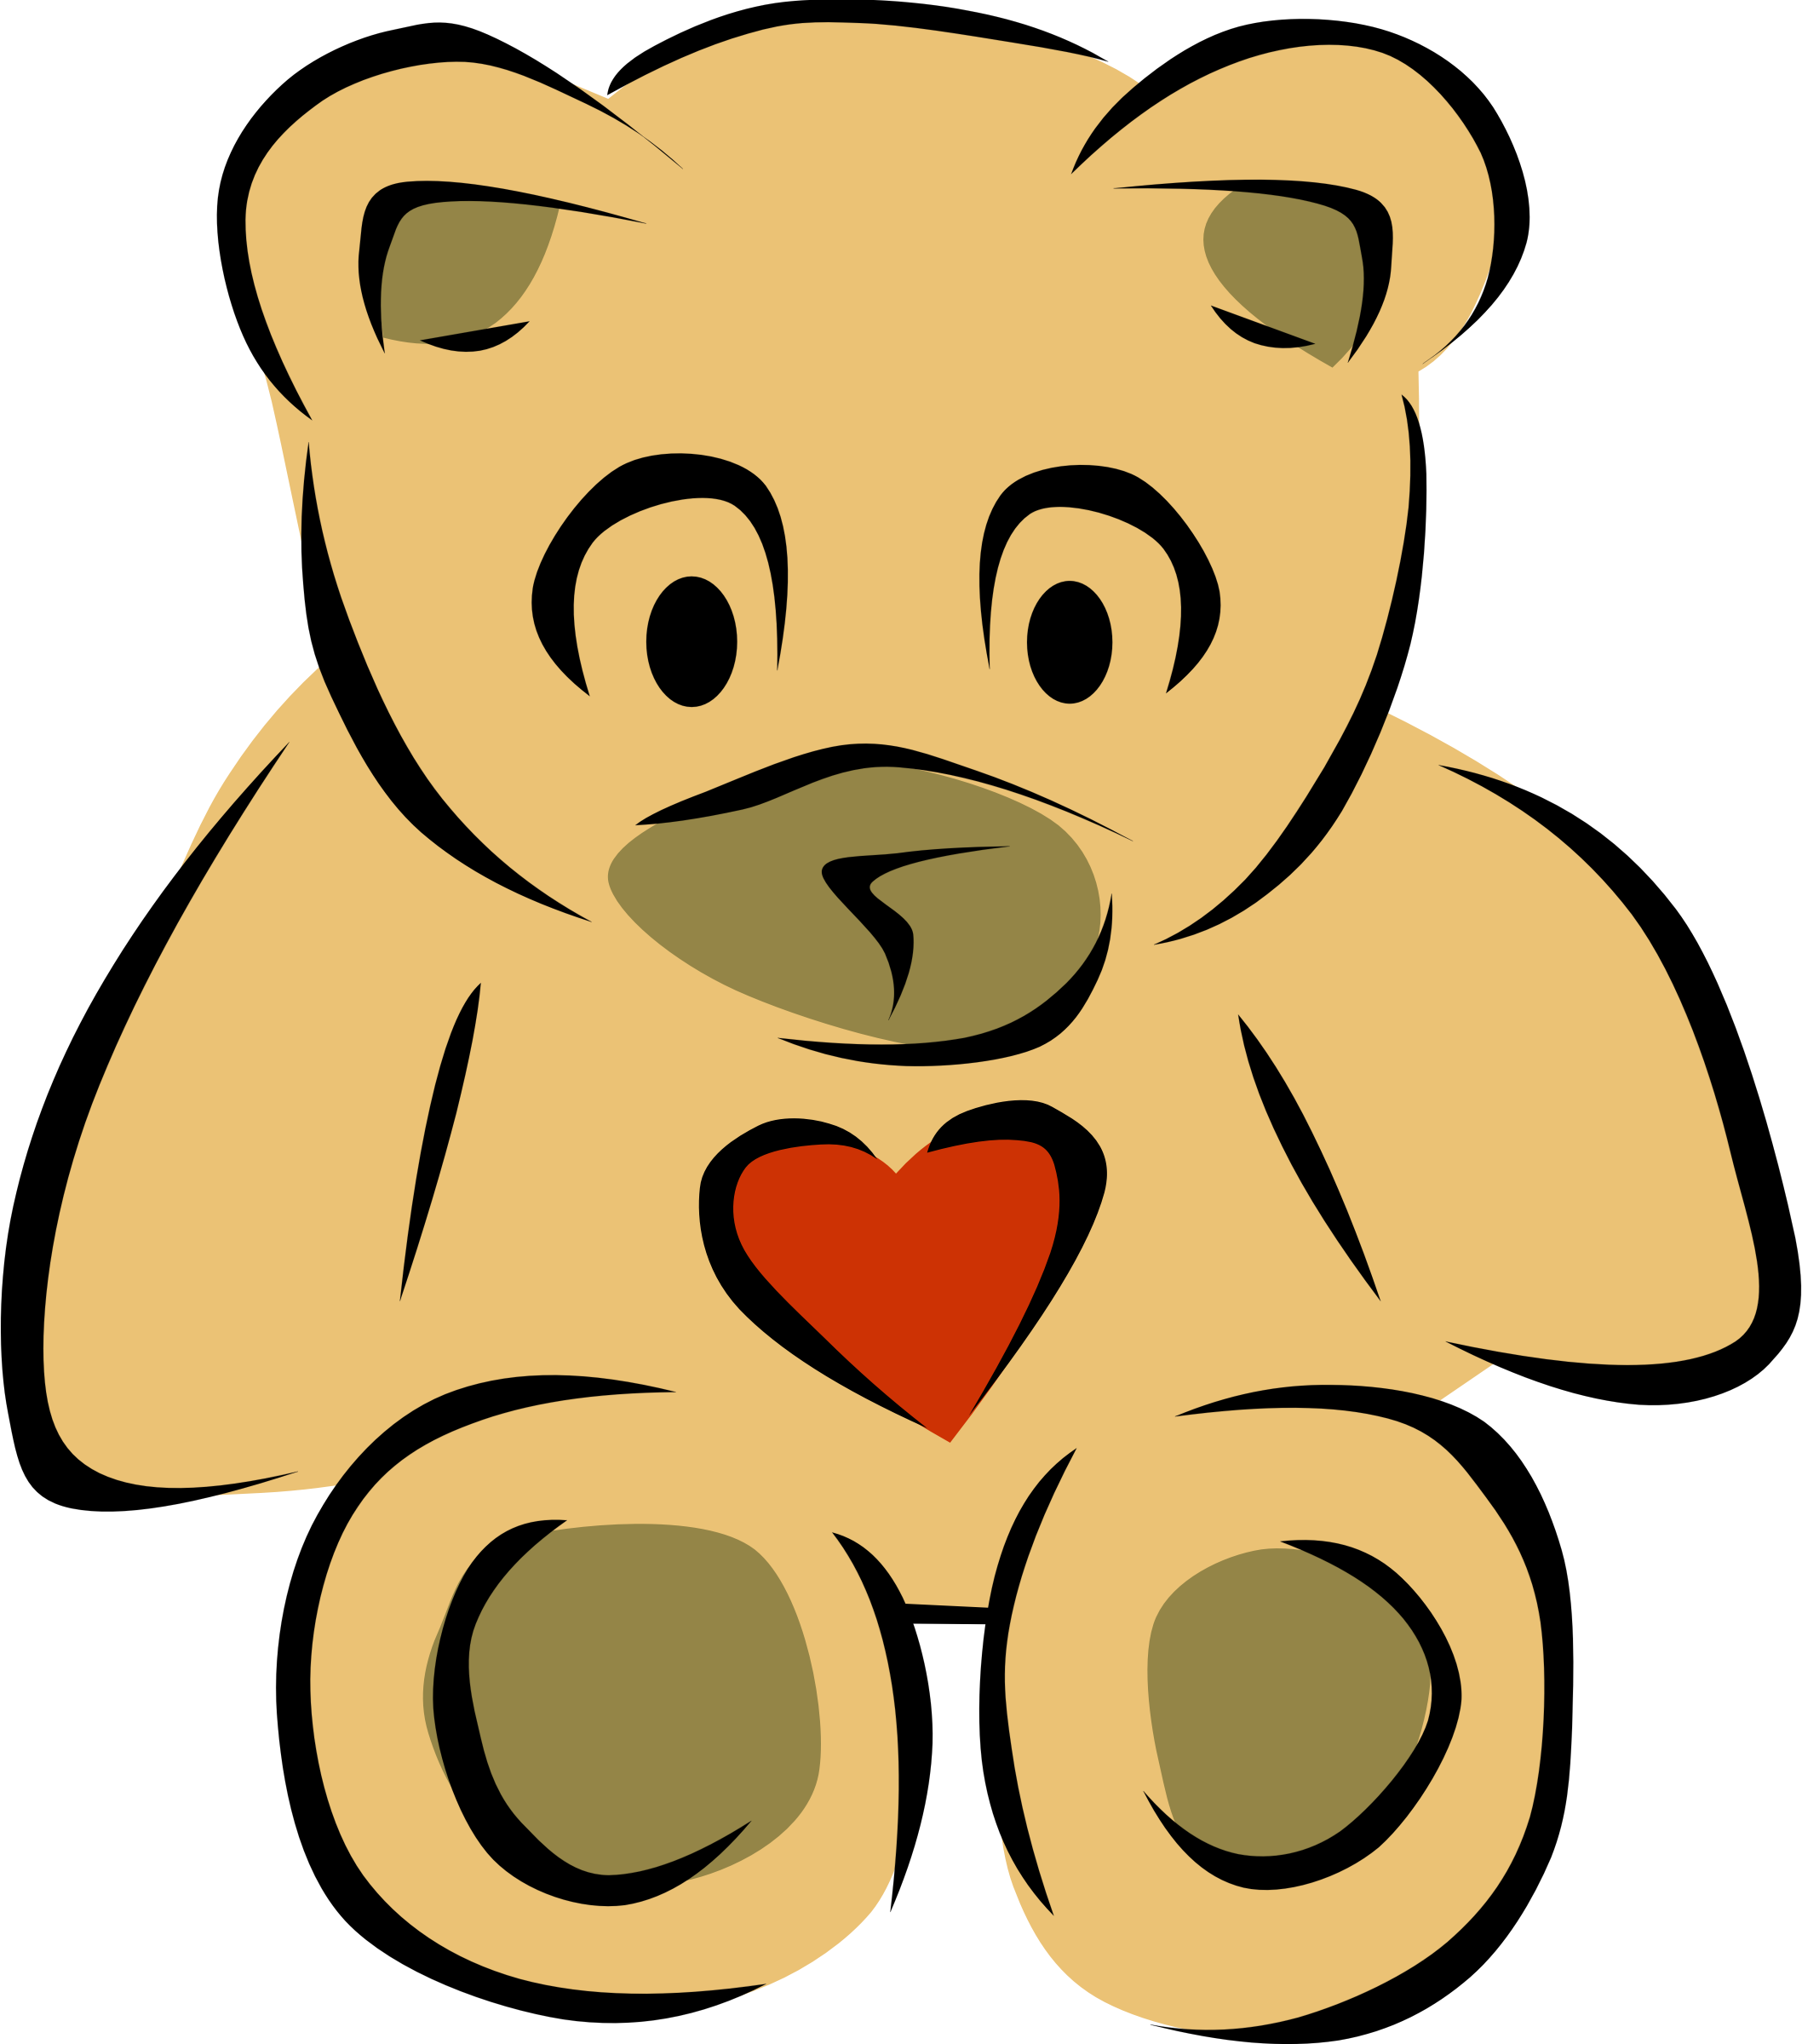 Teddy Bear with heart by Gerald_G